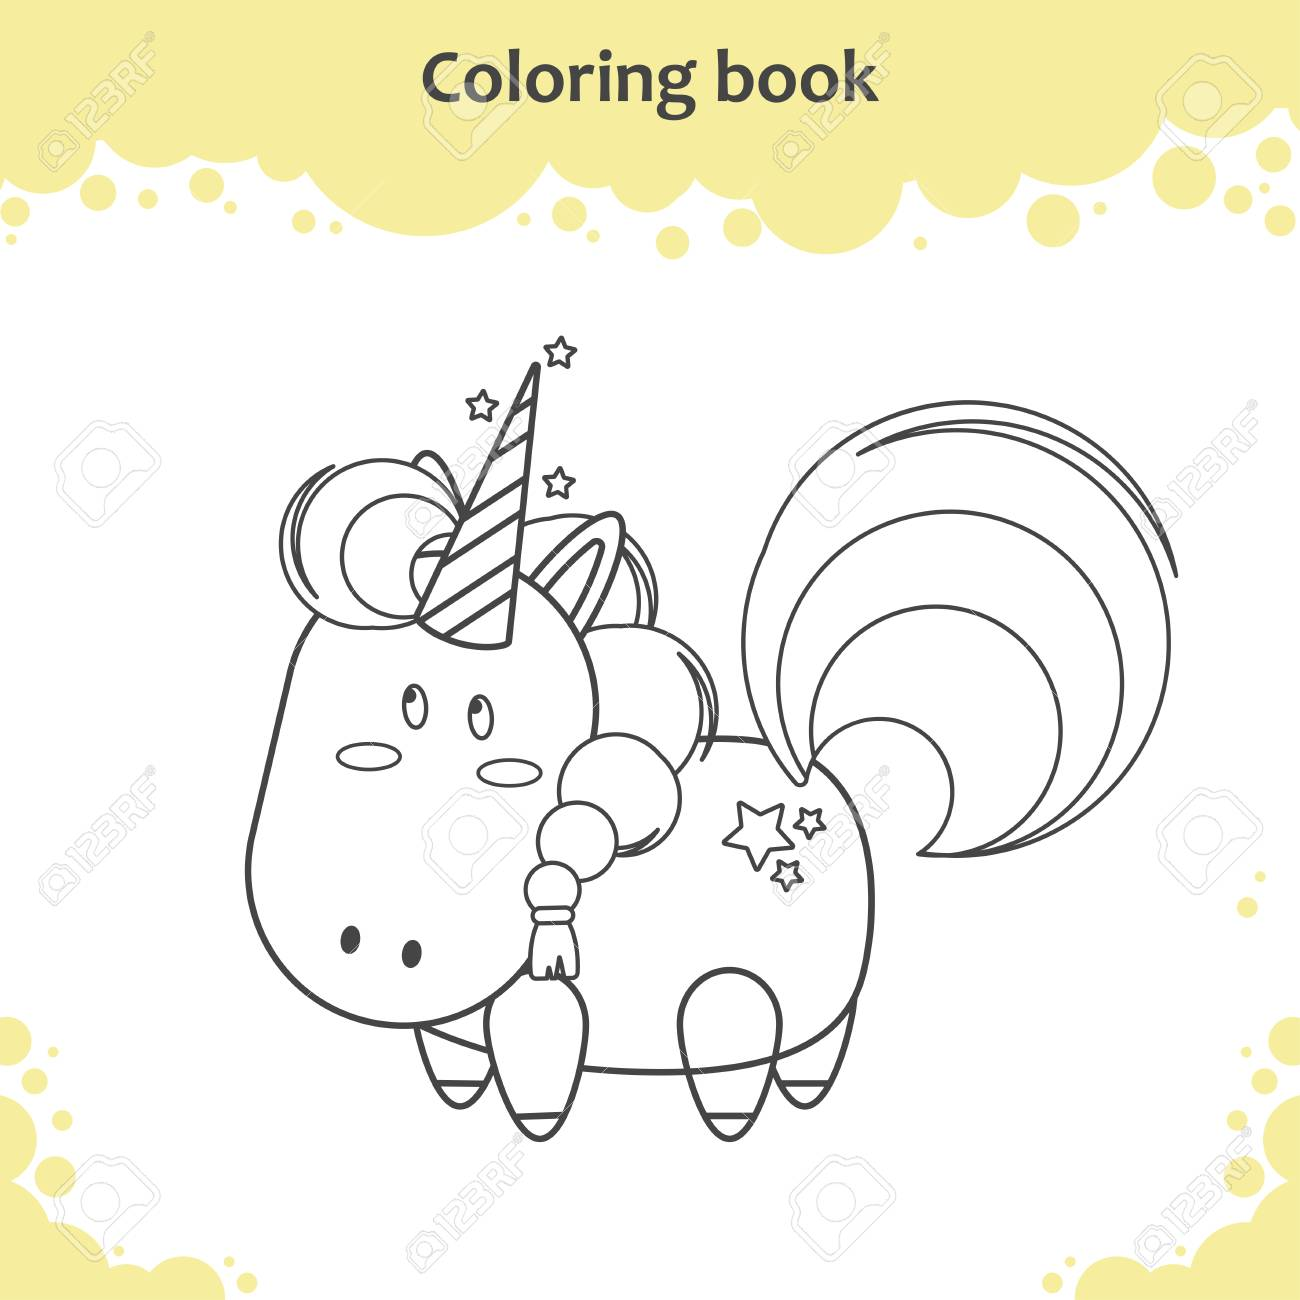 Color The Cute Cartoon Unicorn - Coloring Book For Kids Royalty Free ...